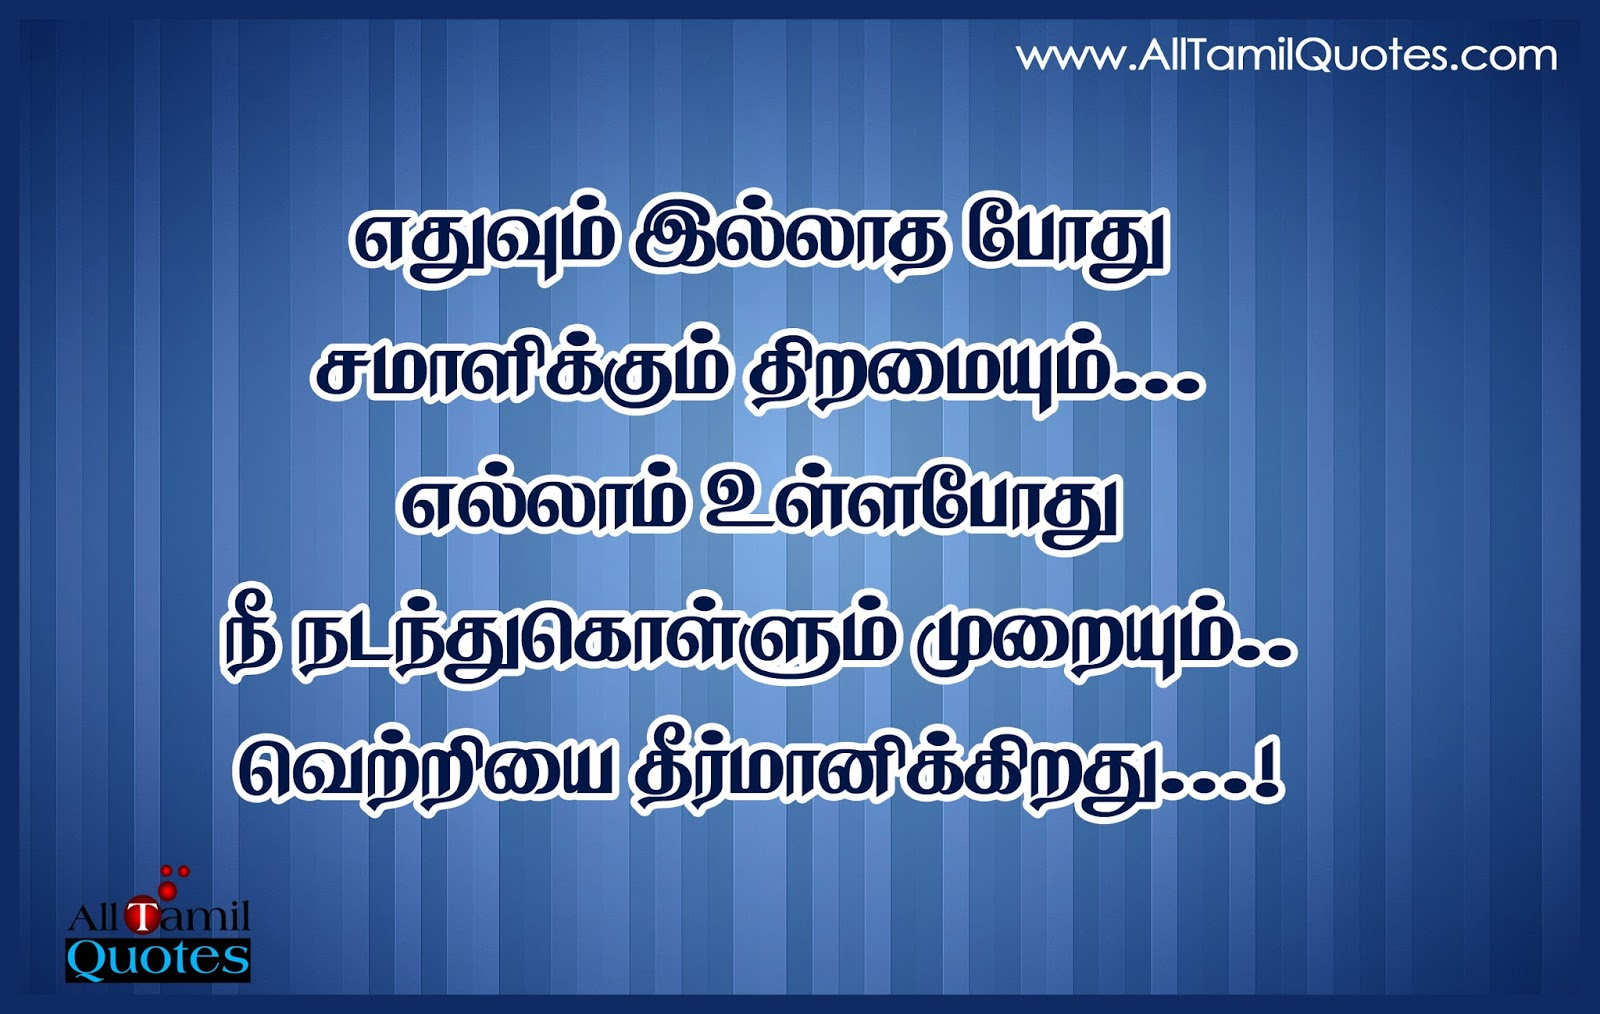 Tamil Qutes and Images